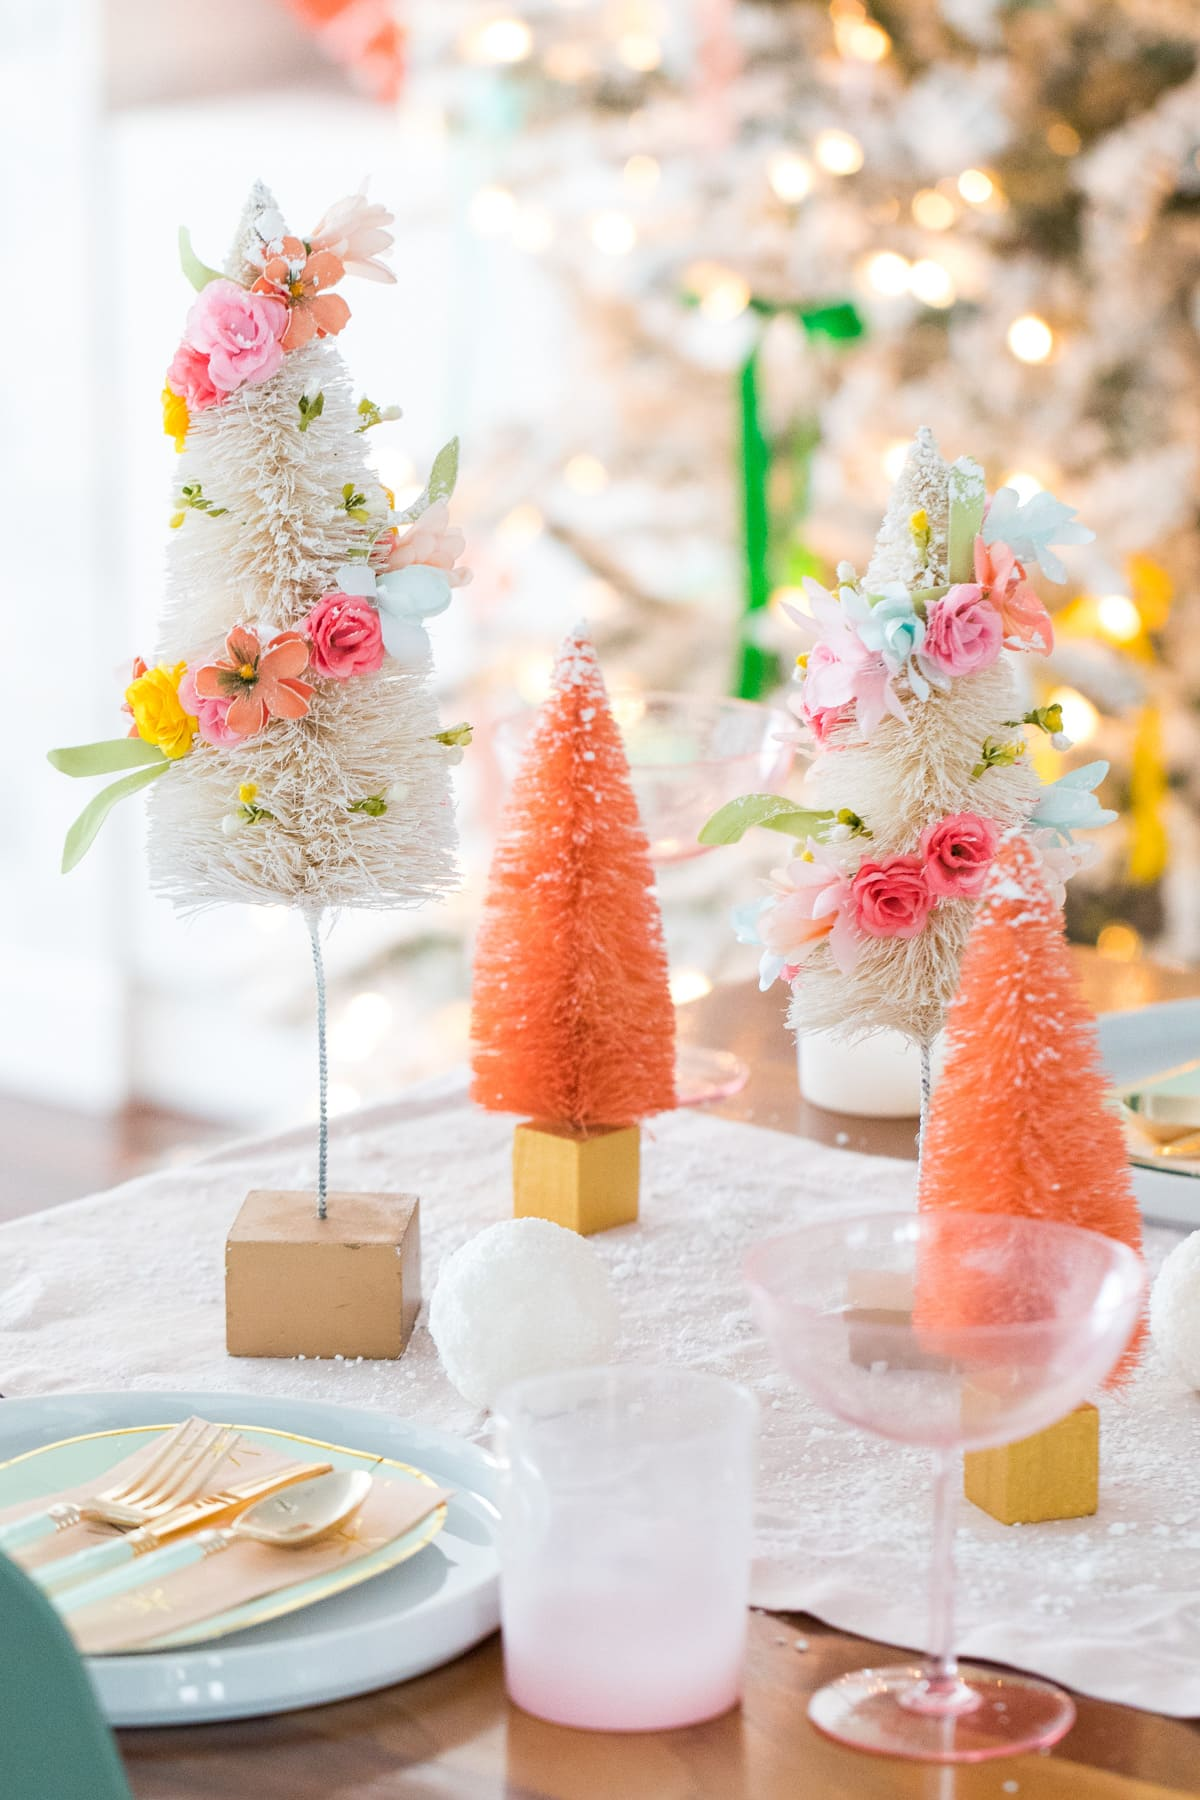 mix them with other color trees -- Faux Flower Bottle Brush Tree DIY Christmas Centerpiece Idea by top Houston lifestyle blogger Ashley Rose of Sugar and Cloth #diy #christmas #decor #howto #craft #entertaining #centerpiece #ideas